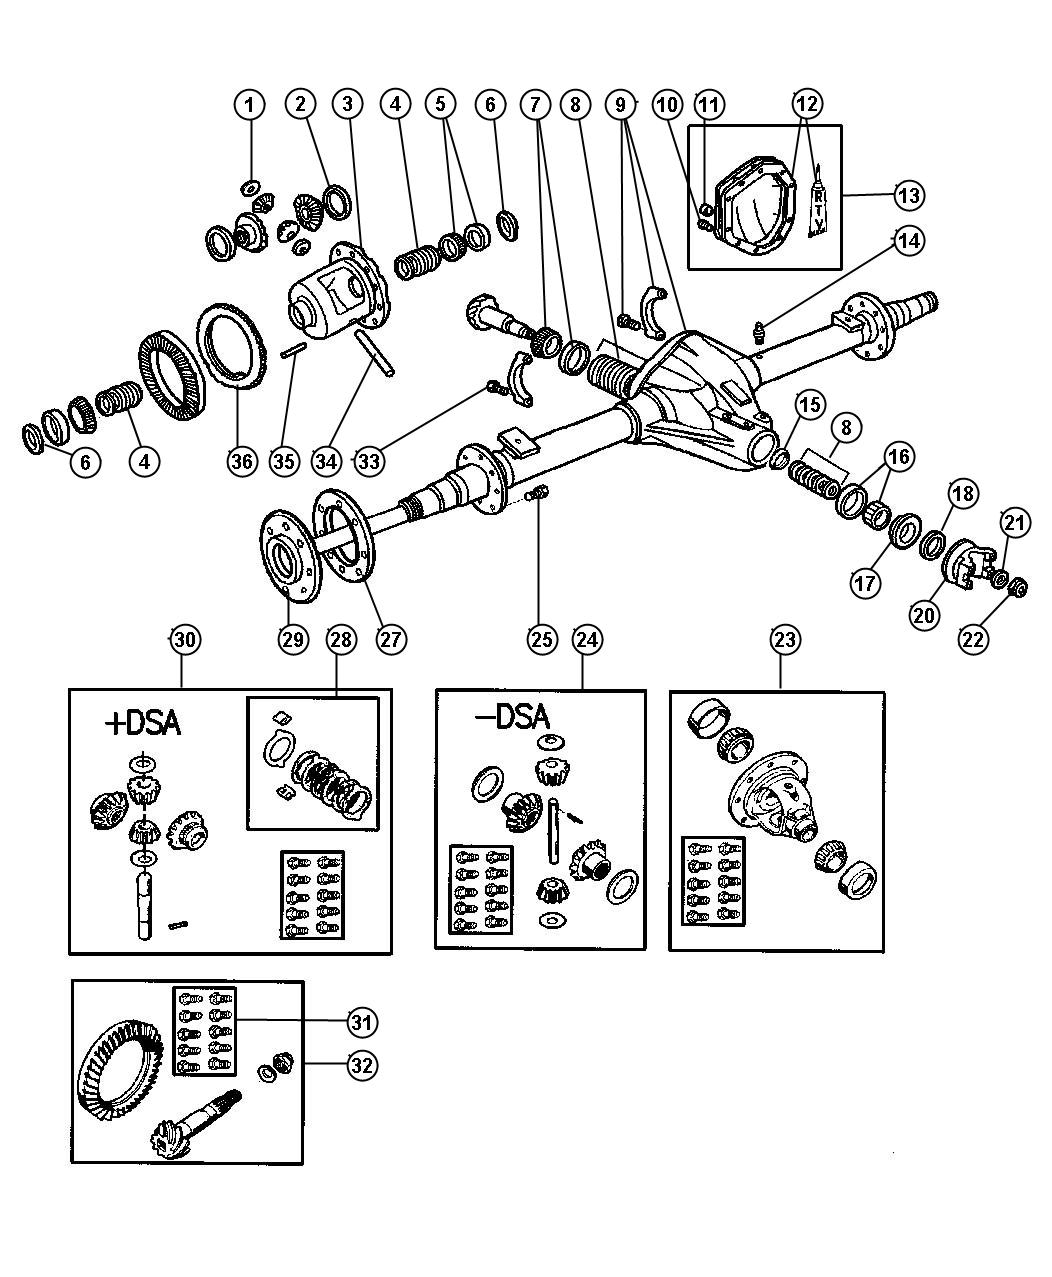 jeep grand cherokee rear bumper parts diagram  jeep  auto